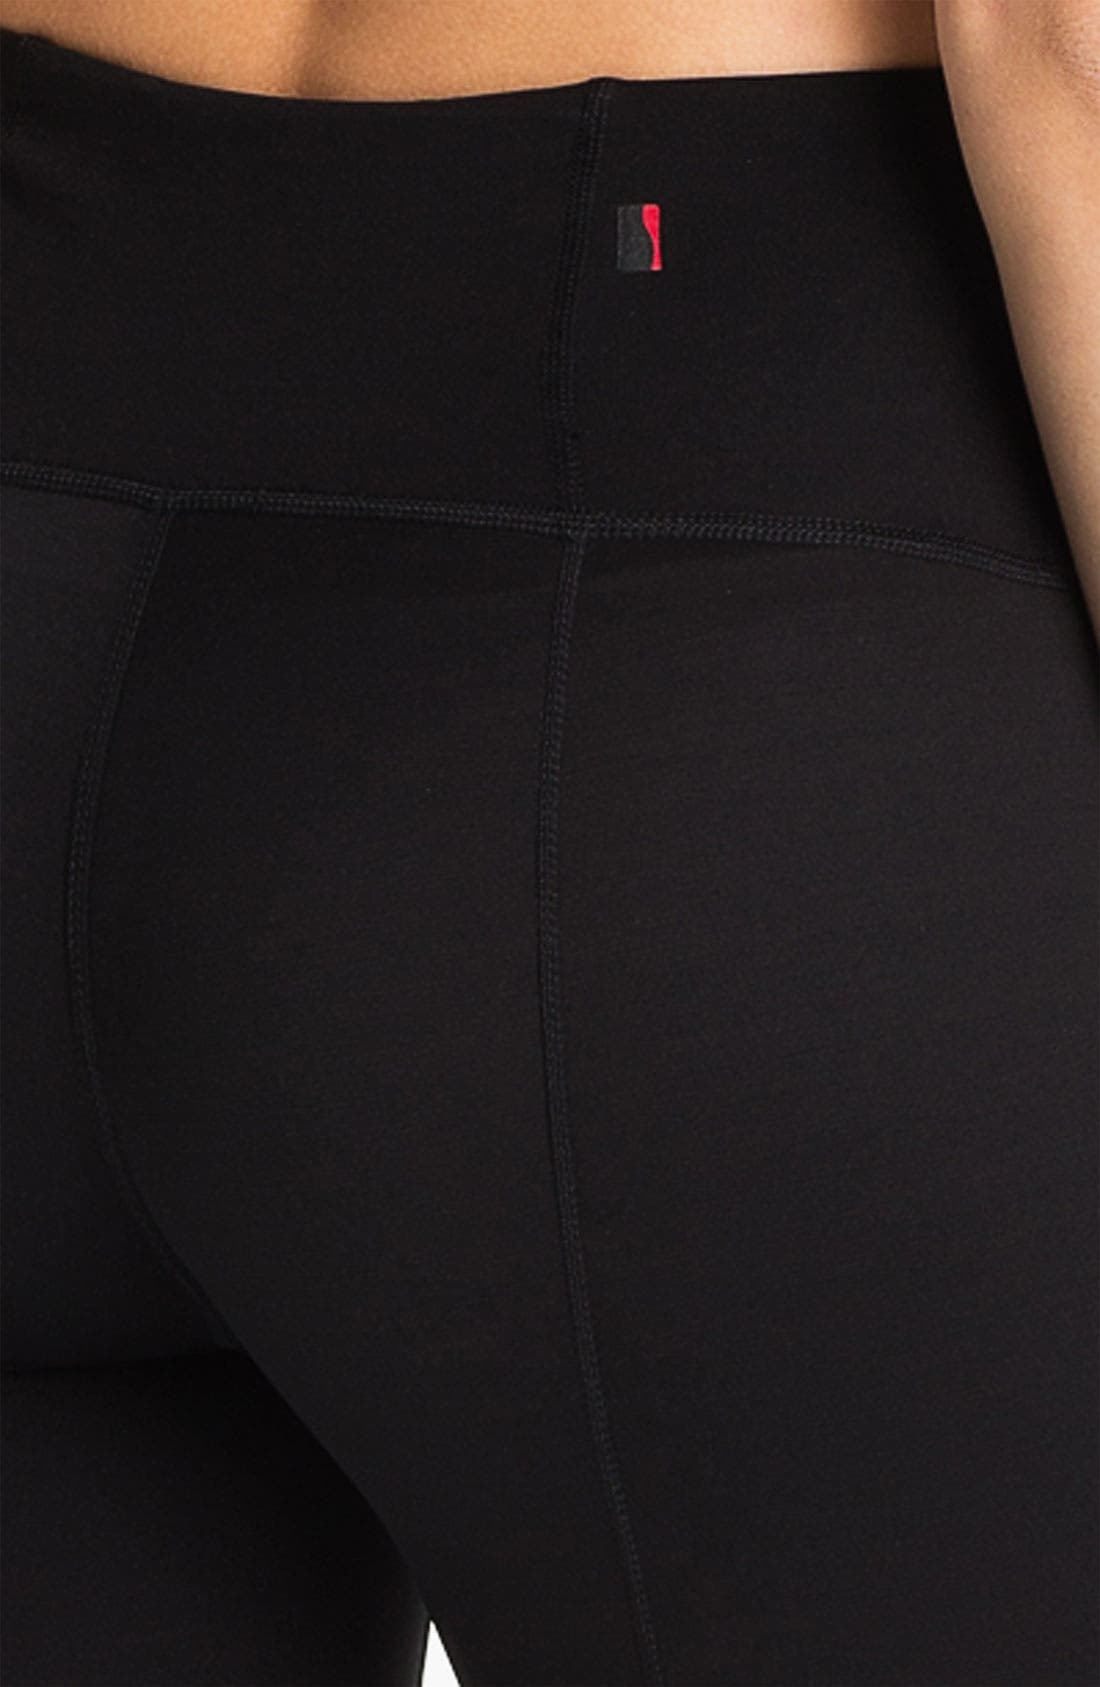 Shaping Compression Activewear Leggings,                             Alternate thumbnail 3, color,                             010